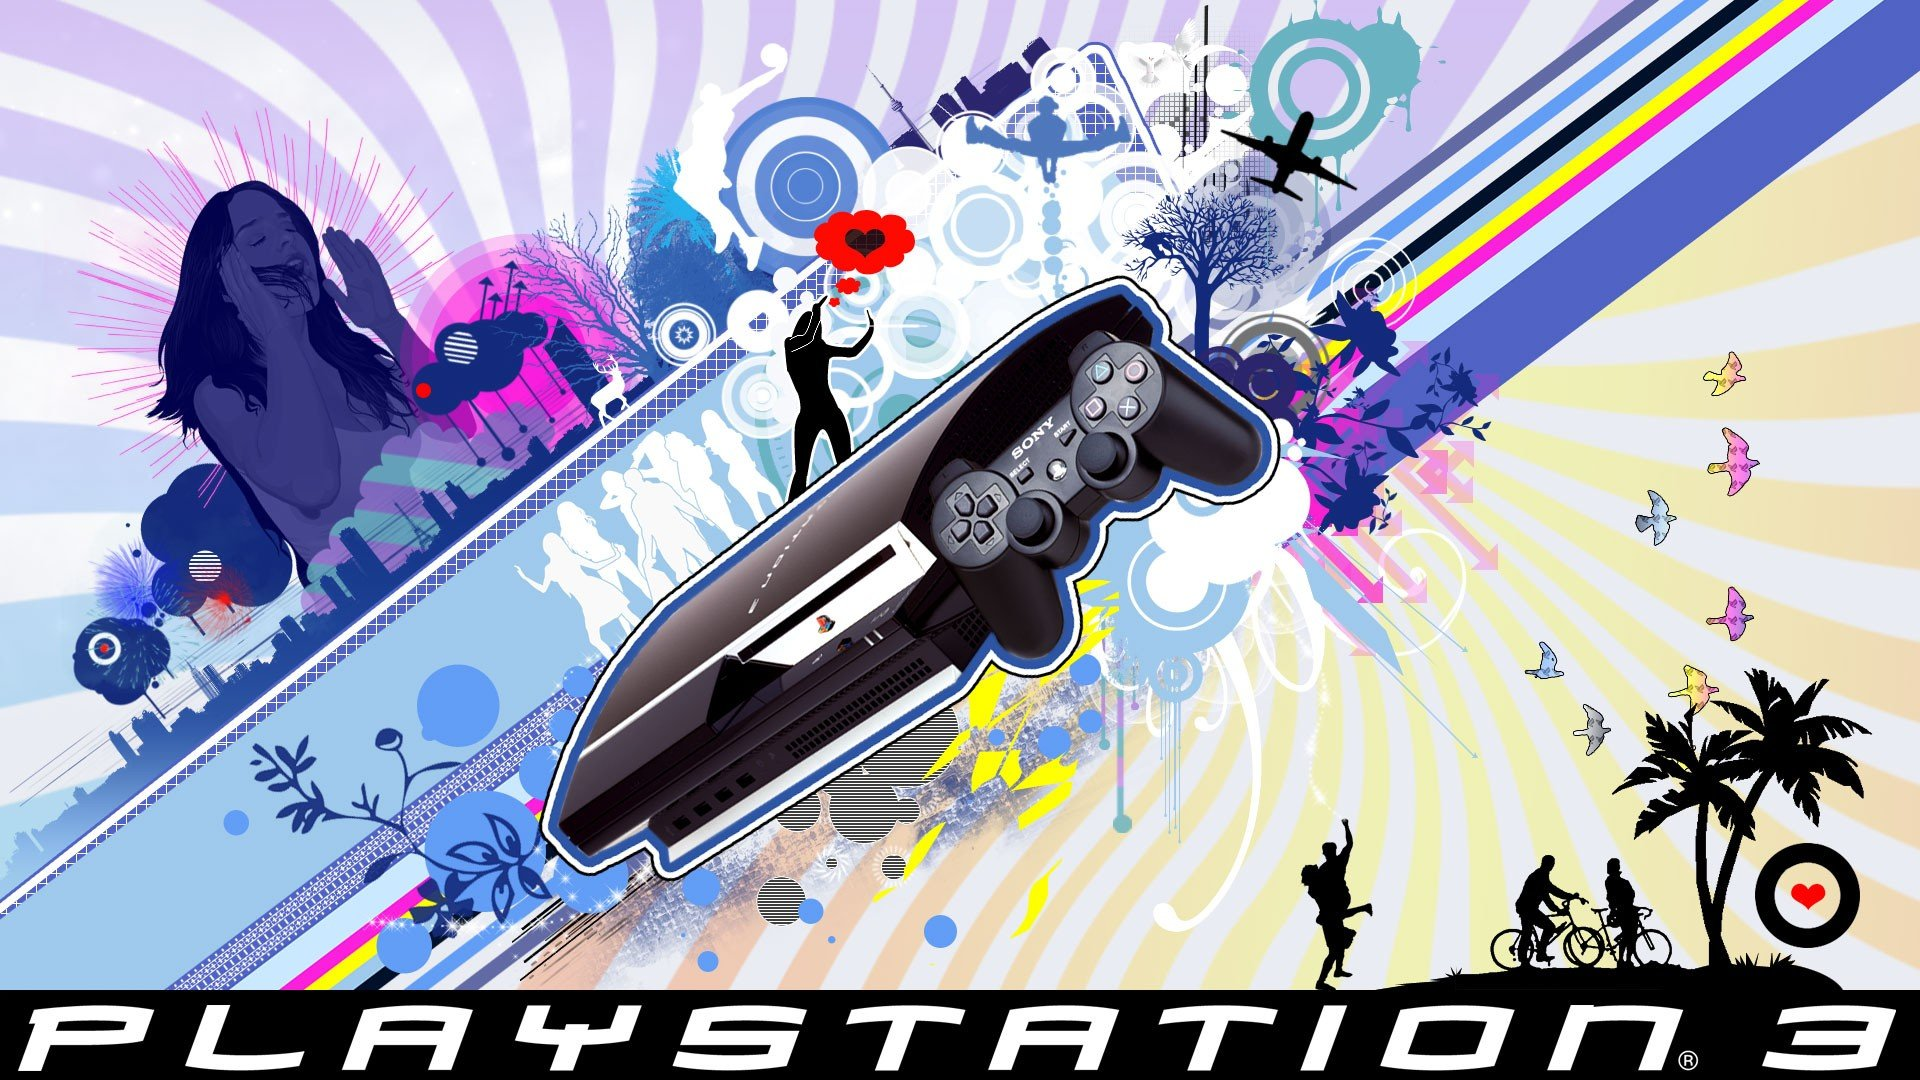 Ps3 themes Wallpapers Backgrounds Images Art Photos 1920x1080